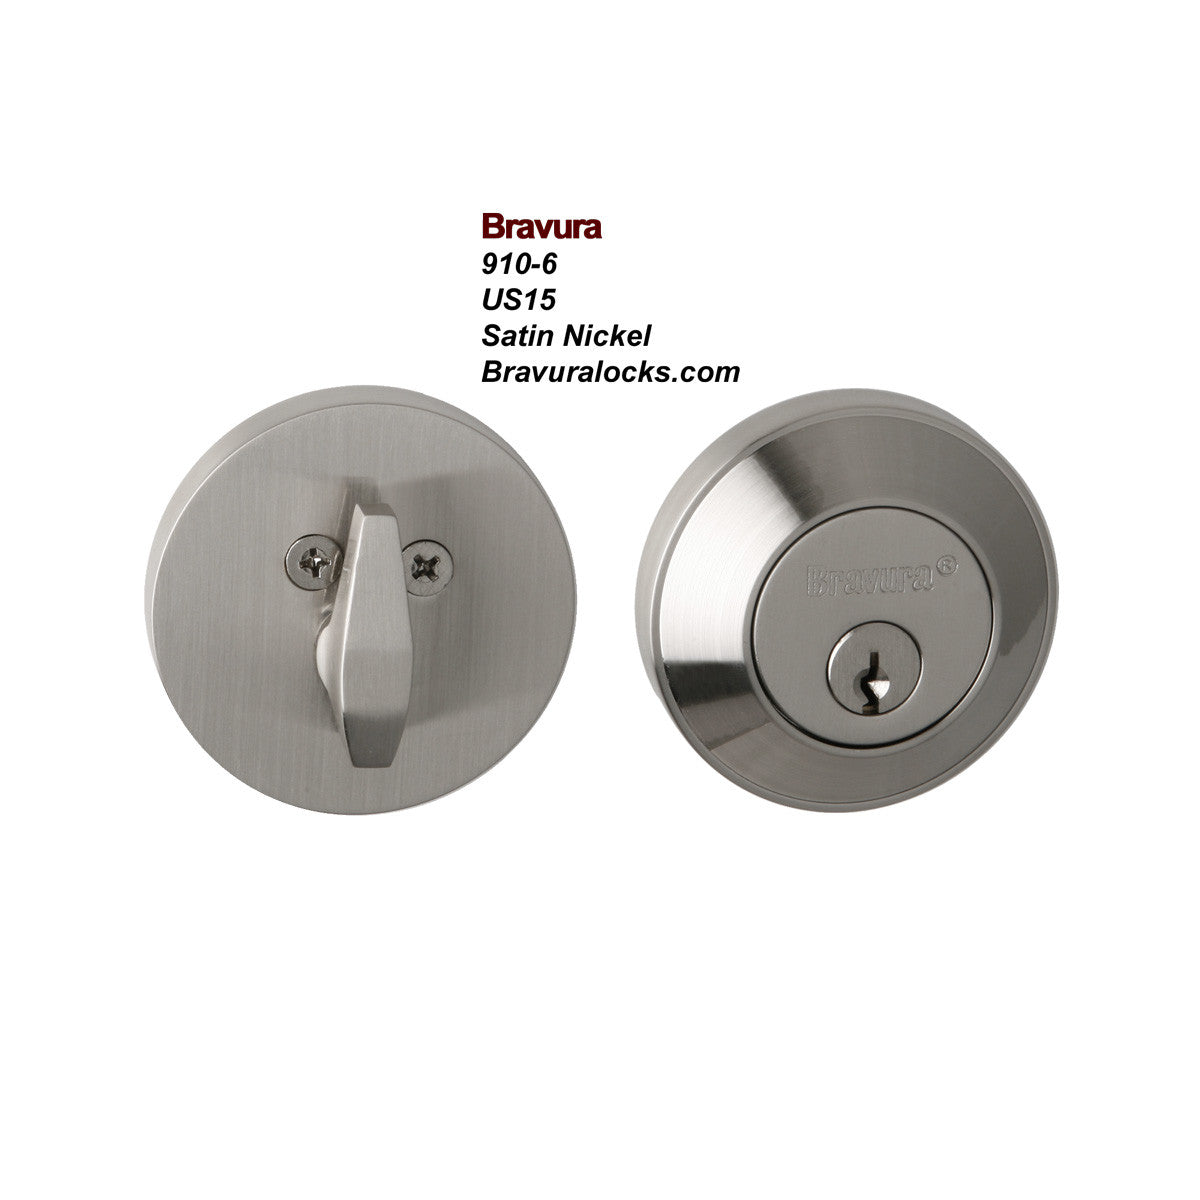 Bravura 910 6 Deadbolt Exterior Door Lock Solid Forged